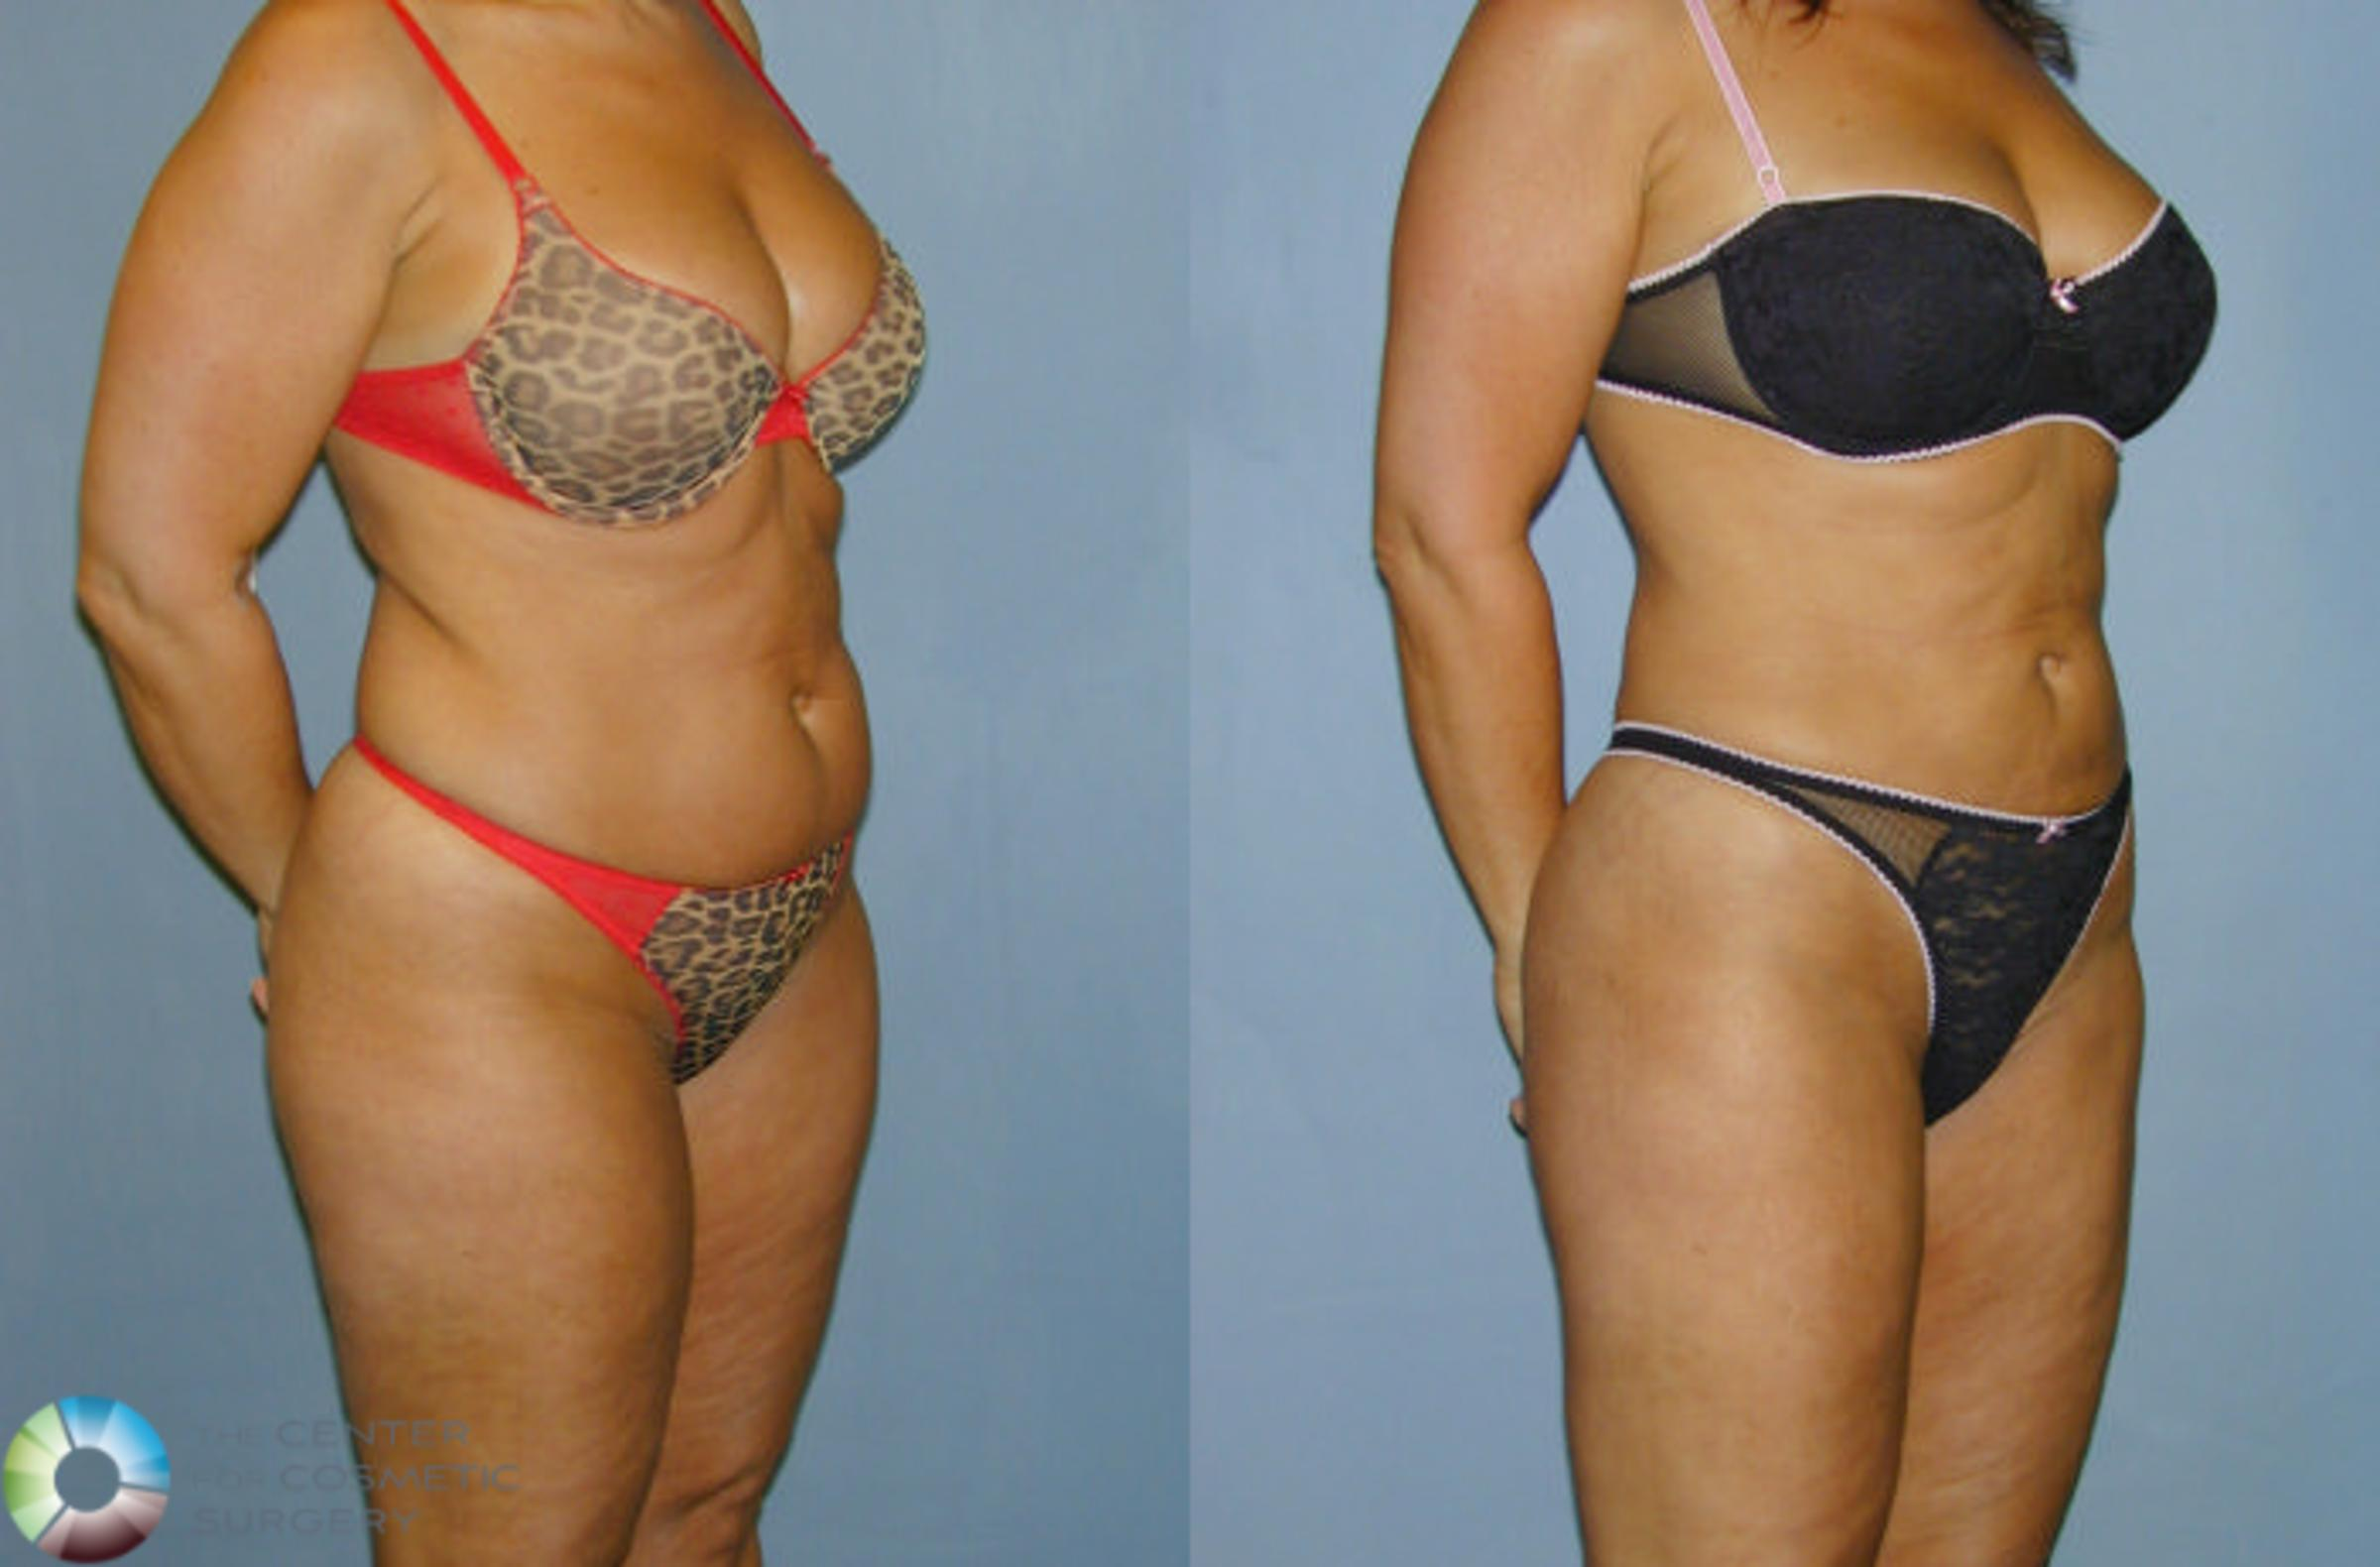 Liposuction In Denver Co The Center For Cosmetic Surgery